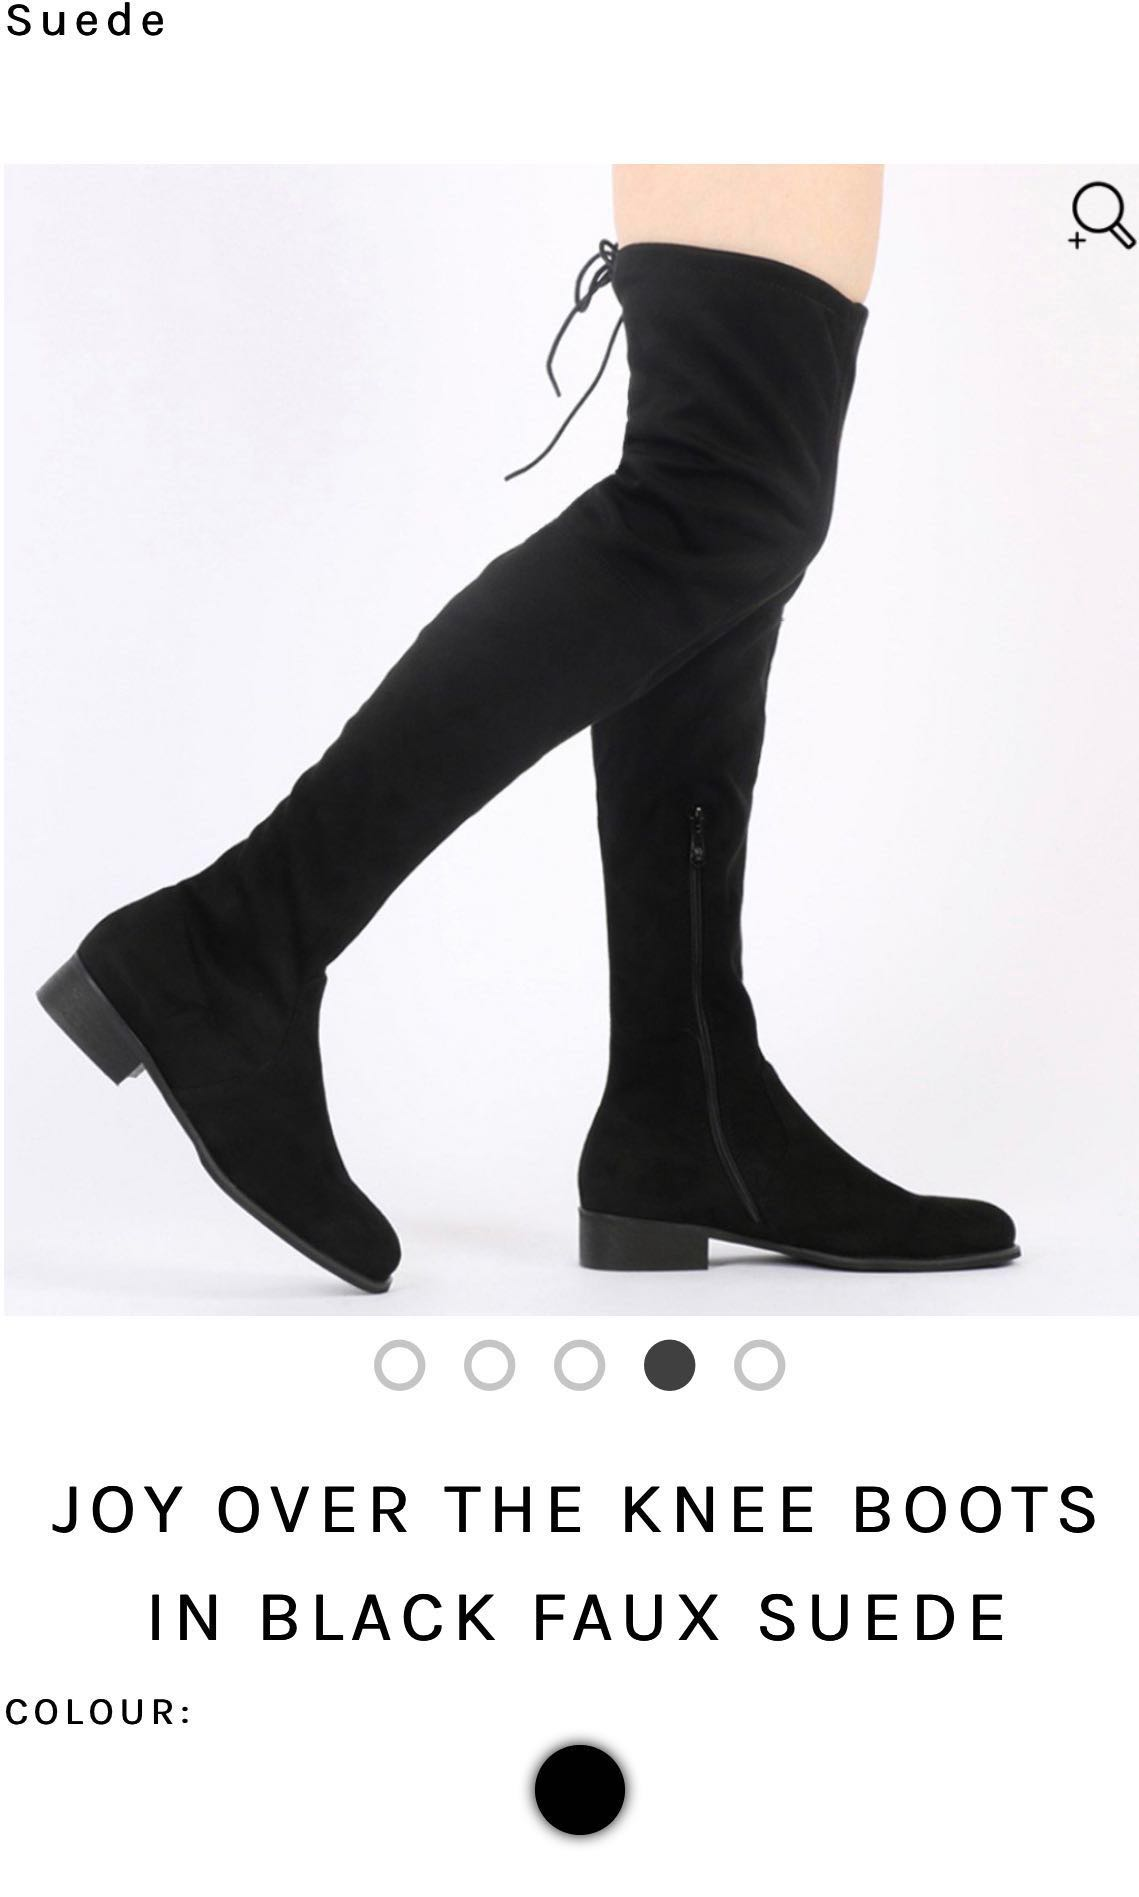 feebaa92a89 Joy over the knee boots in black faux suede, Women's Fashion, Shoes ...